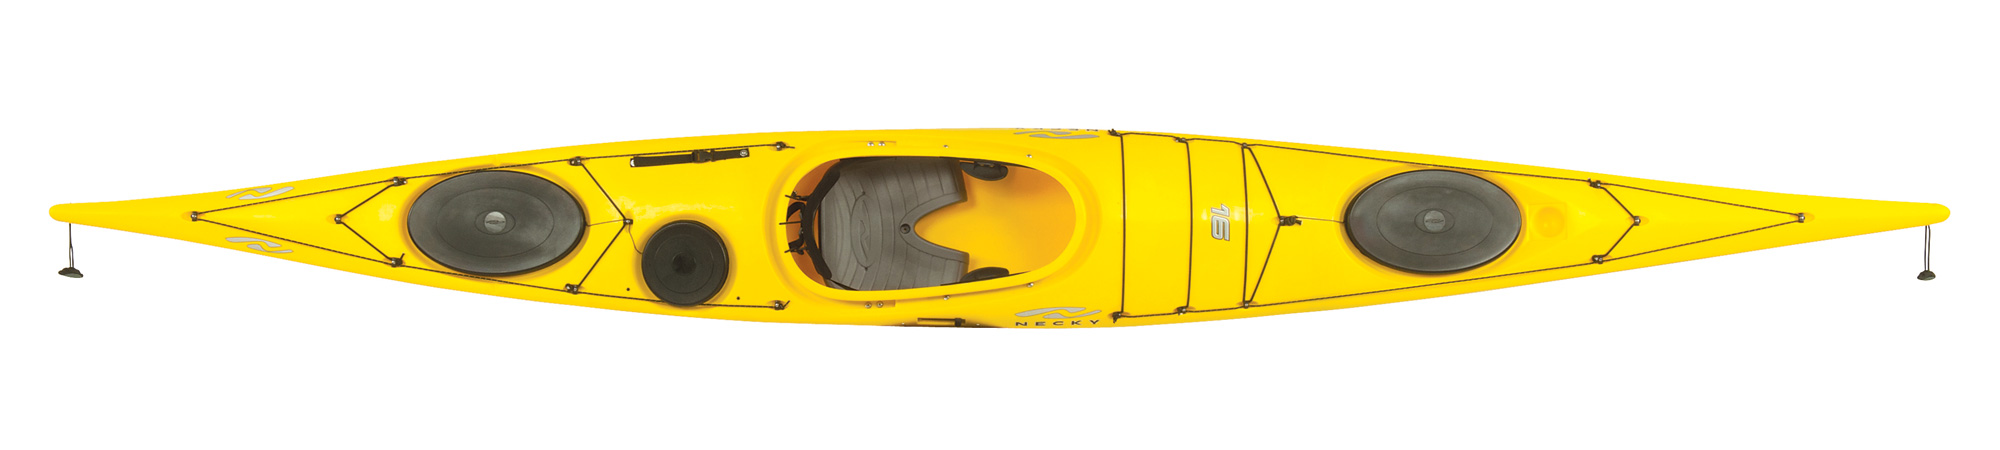 Best Equipment for Kayaking in Norway - Nordic Ventures